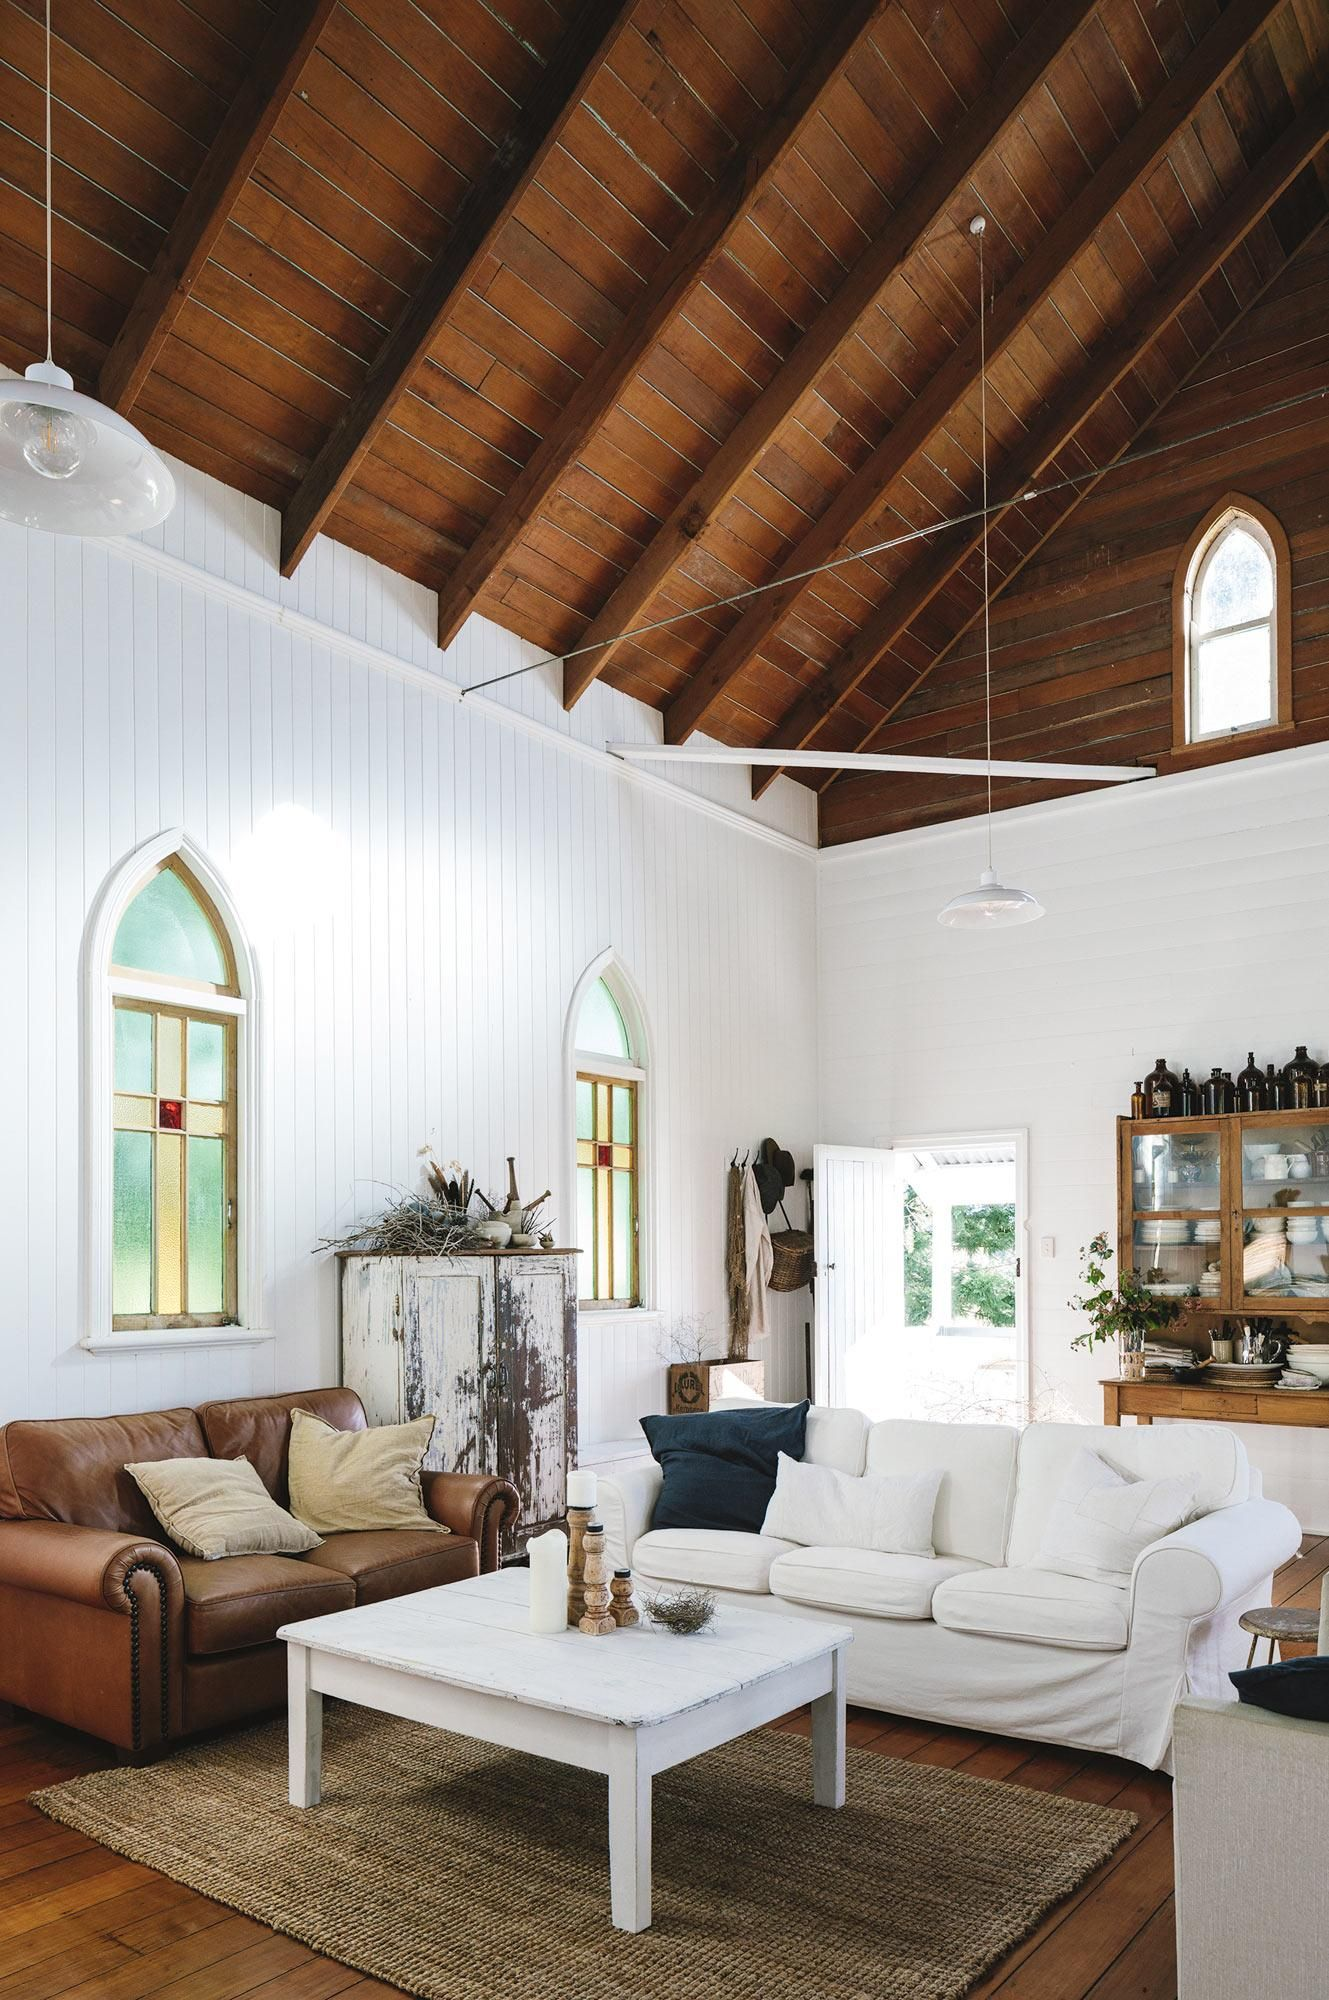 Small Country Living Room Ideas: Church Conversion Becomes Divine Family Home